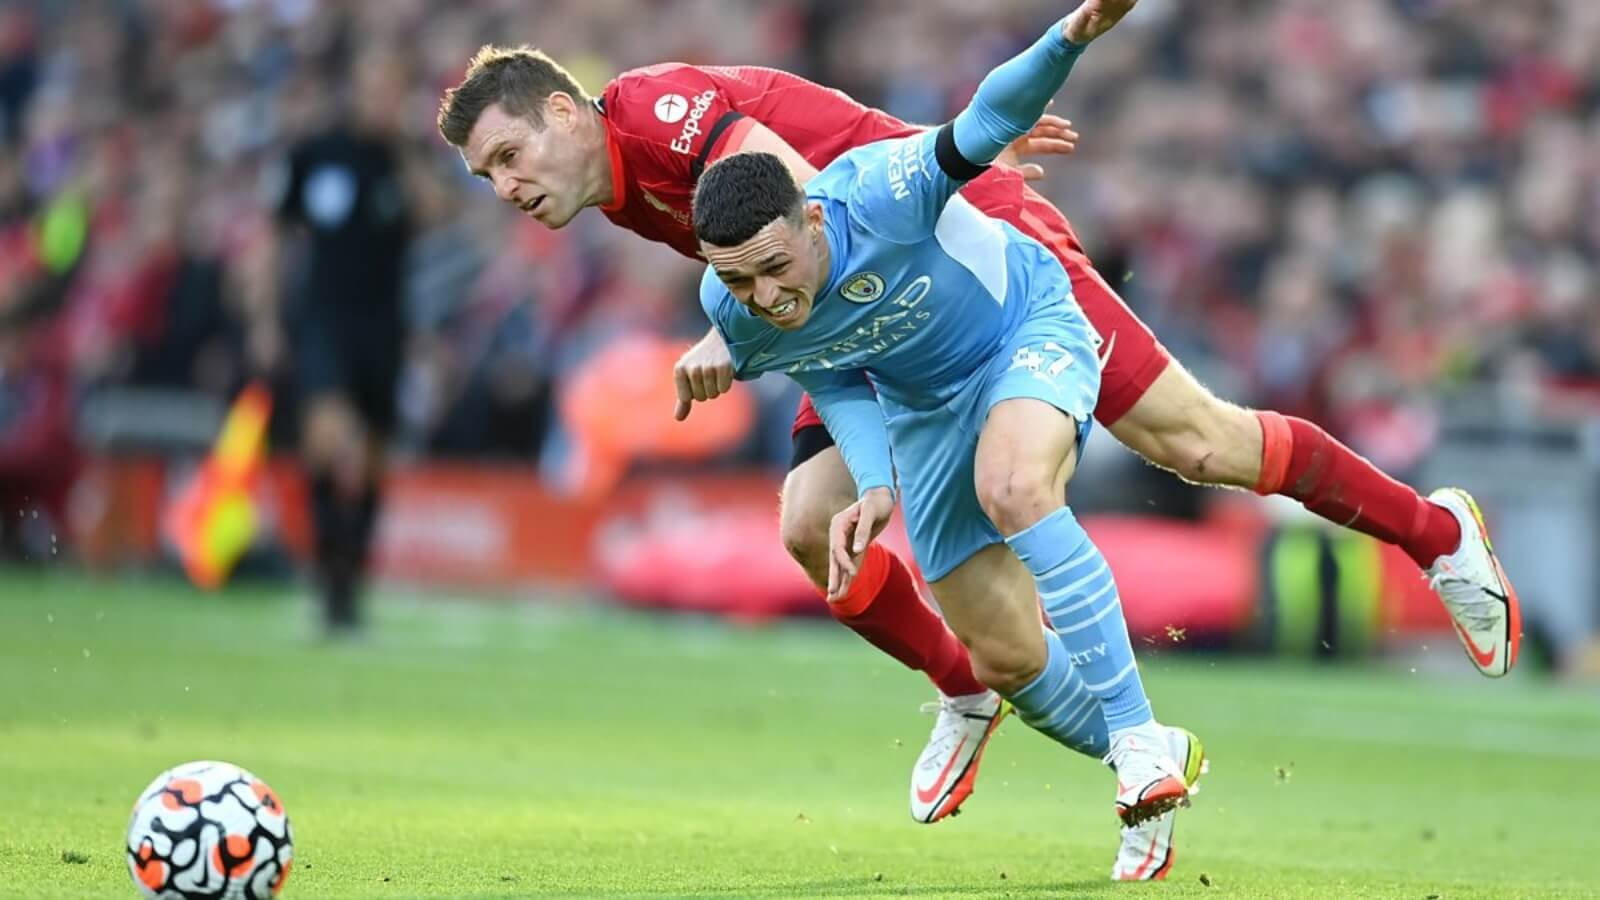 Paul Dickov believes Phil Foden could be best in the world